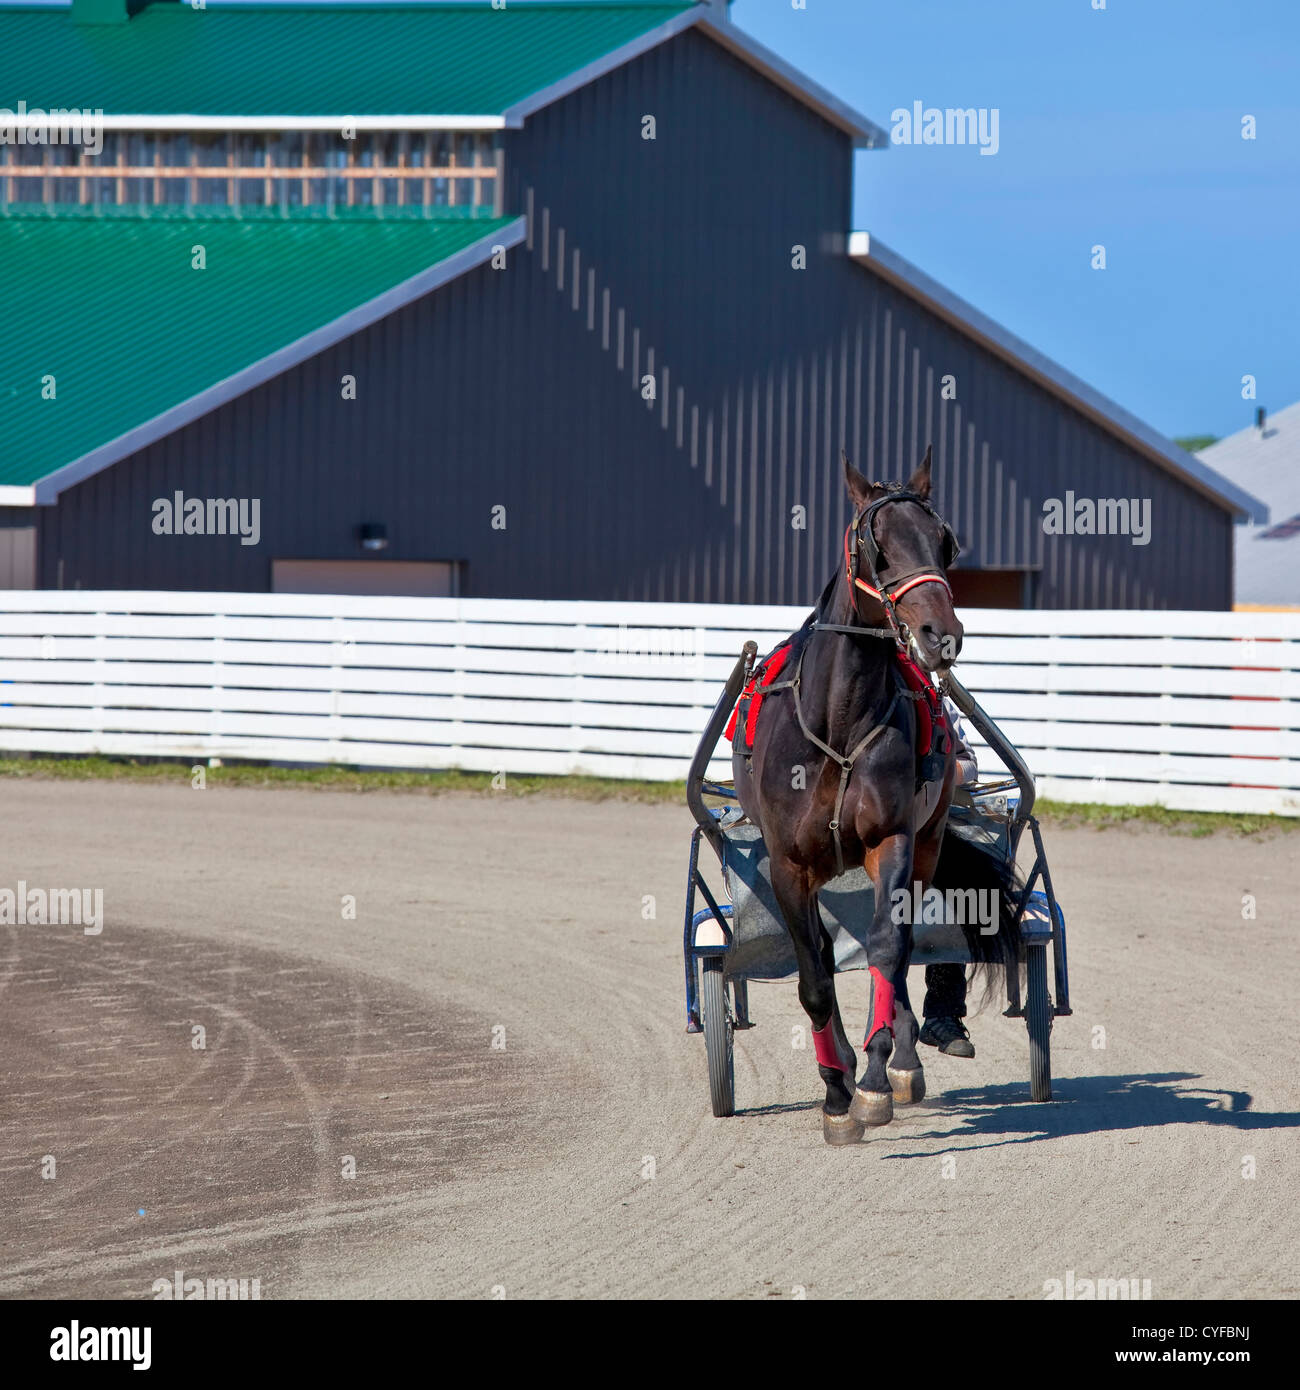 Horses in harness racing around the track. - Stock Image